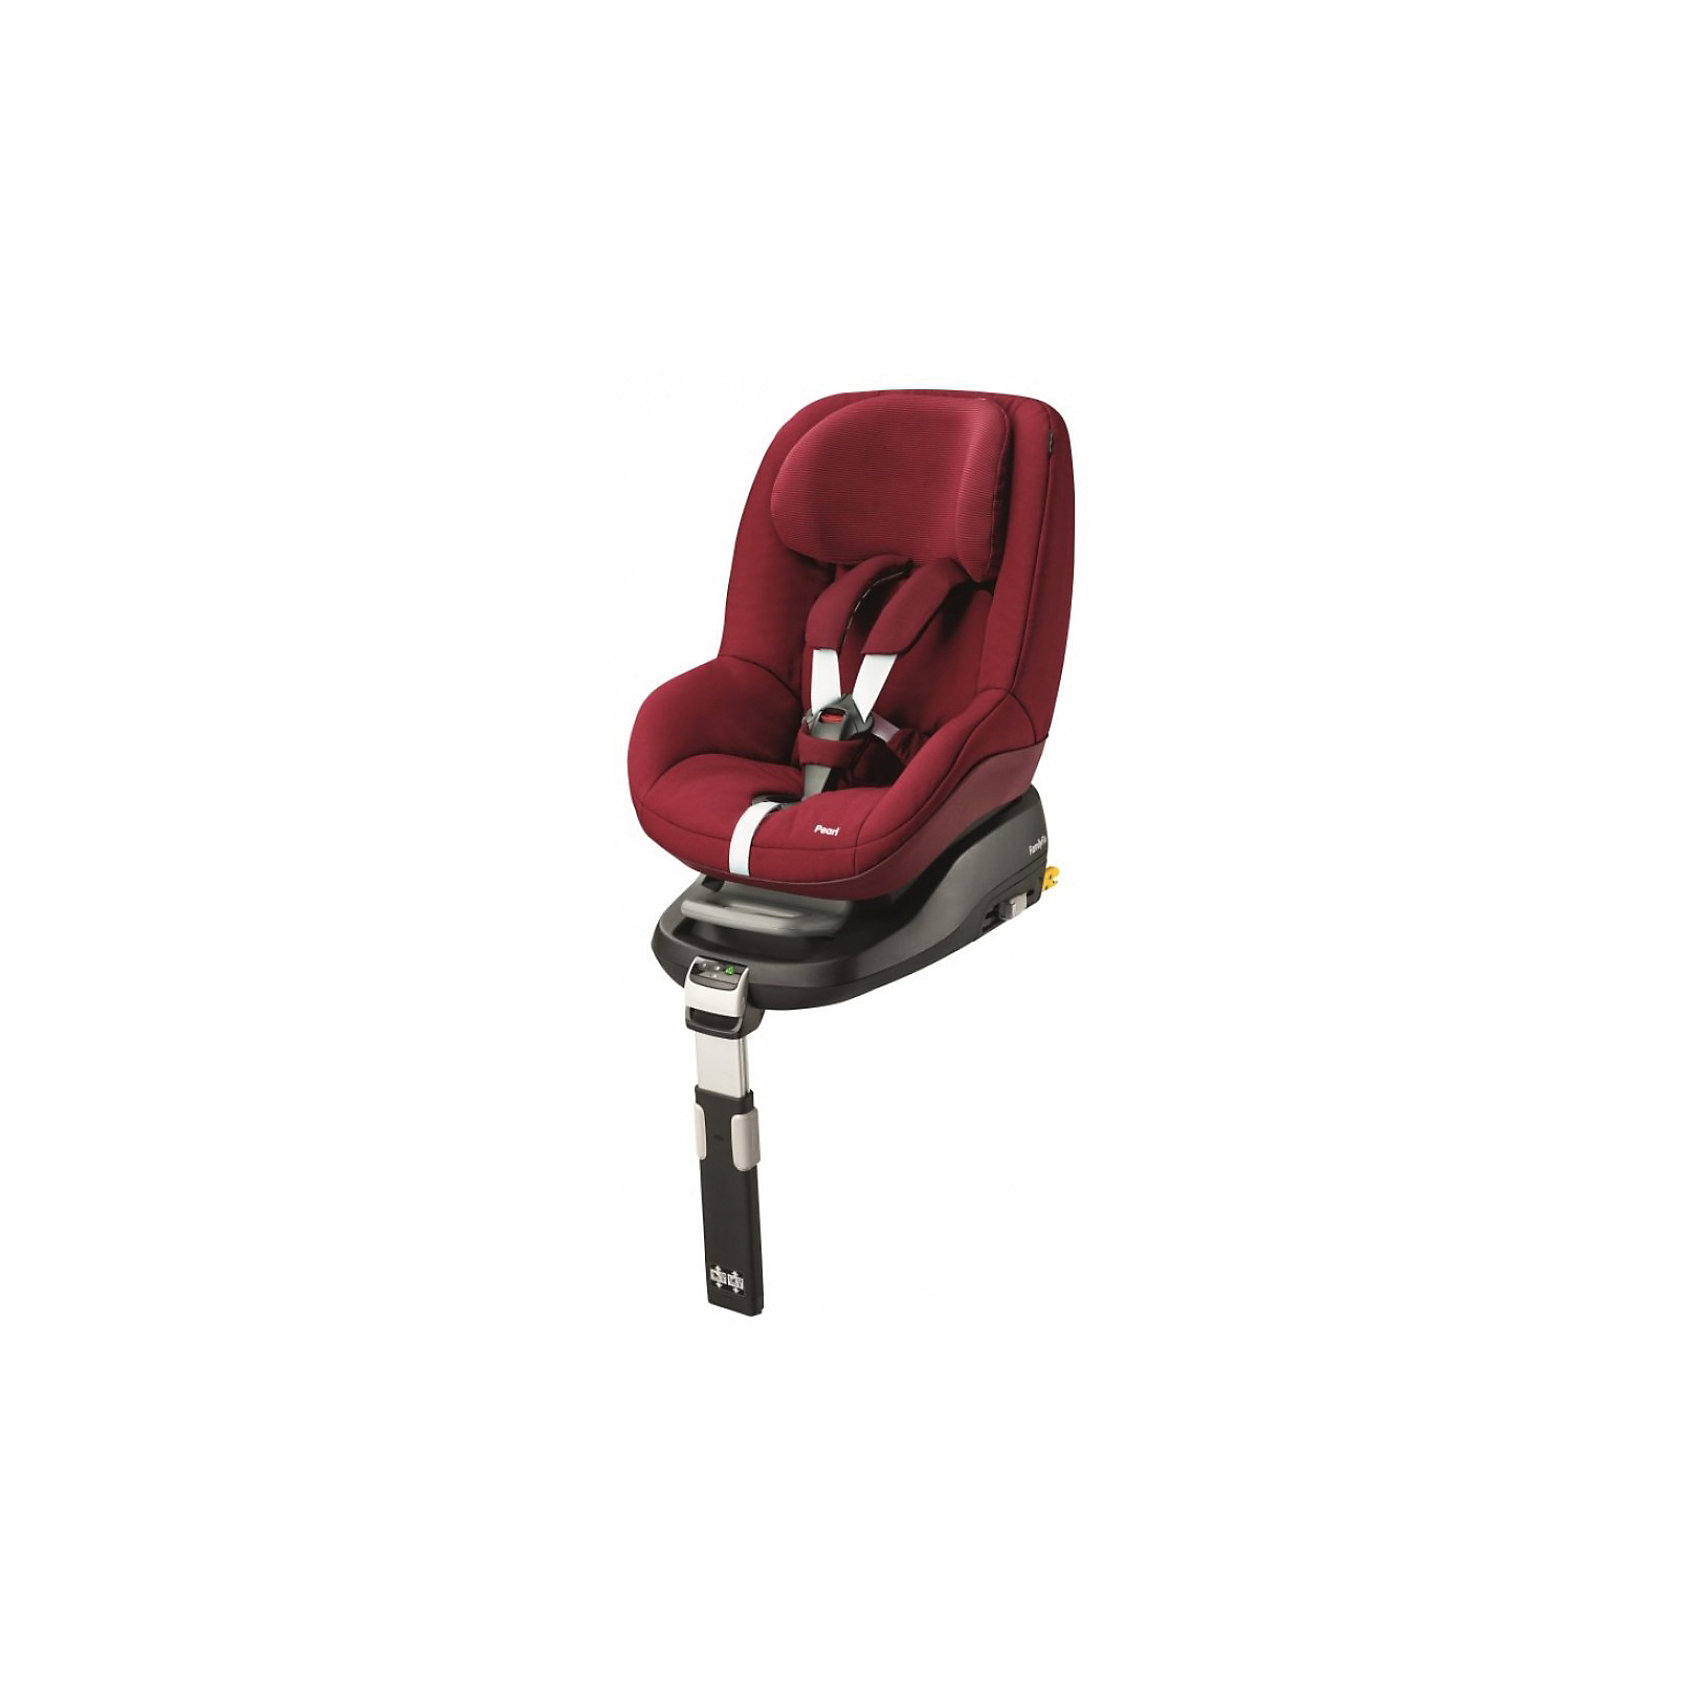 Maxi Cosi Автокресло Pearl 9-18 кг., Maxi-Cosi, Robin Red